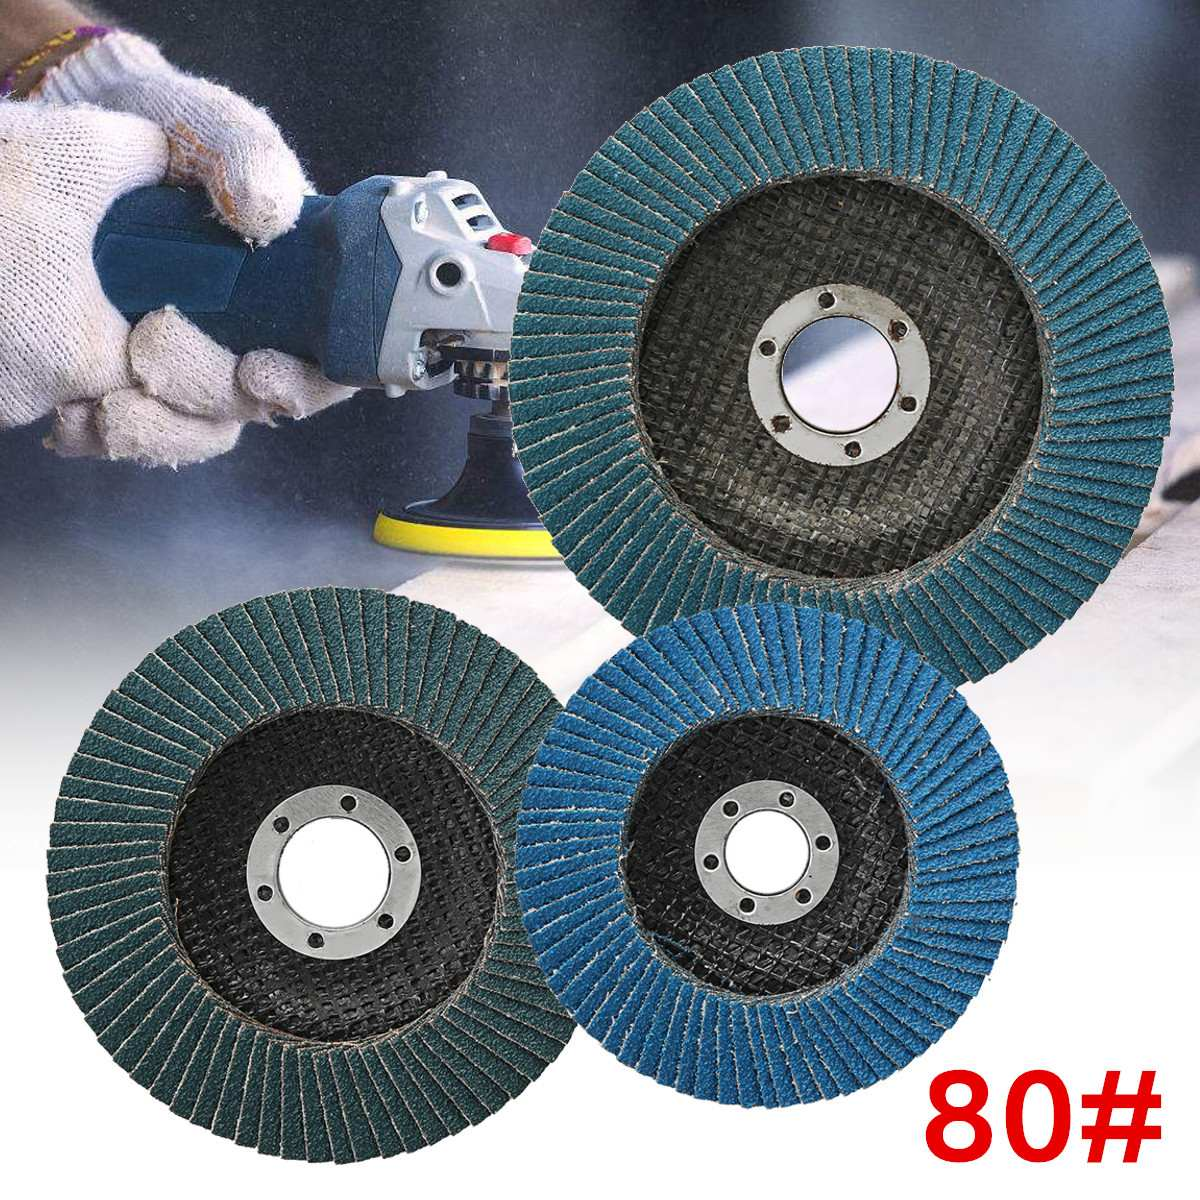 1 Piece 80 Grit Metal Flap Sanding Discs Wheel Angle Grinder Rotary Polishing Tools Metalworking Abrasive Tools 100/115/125mm